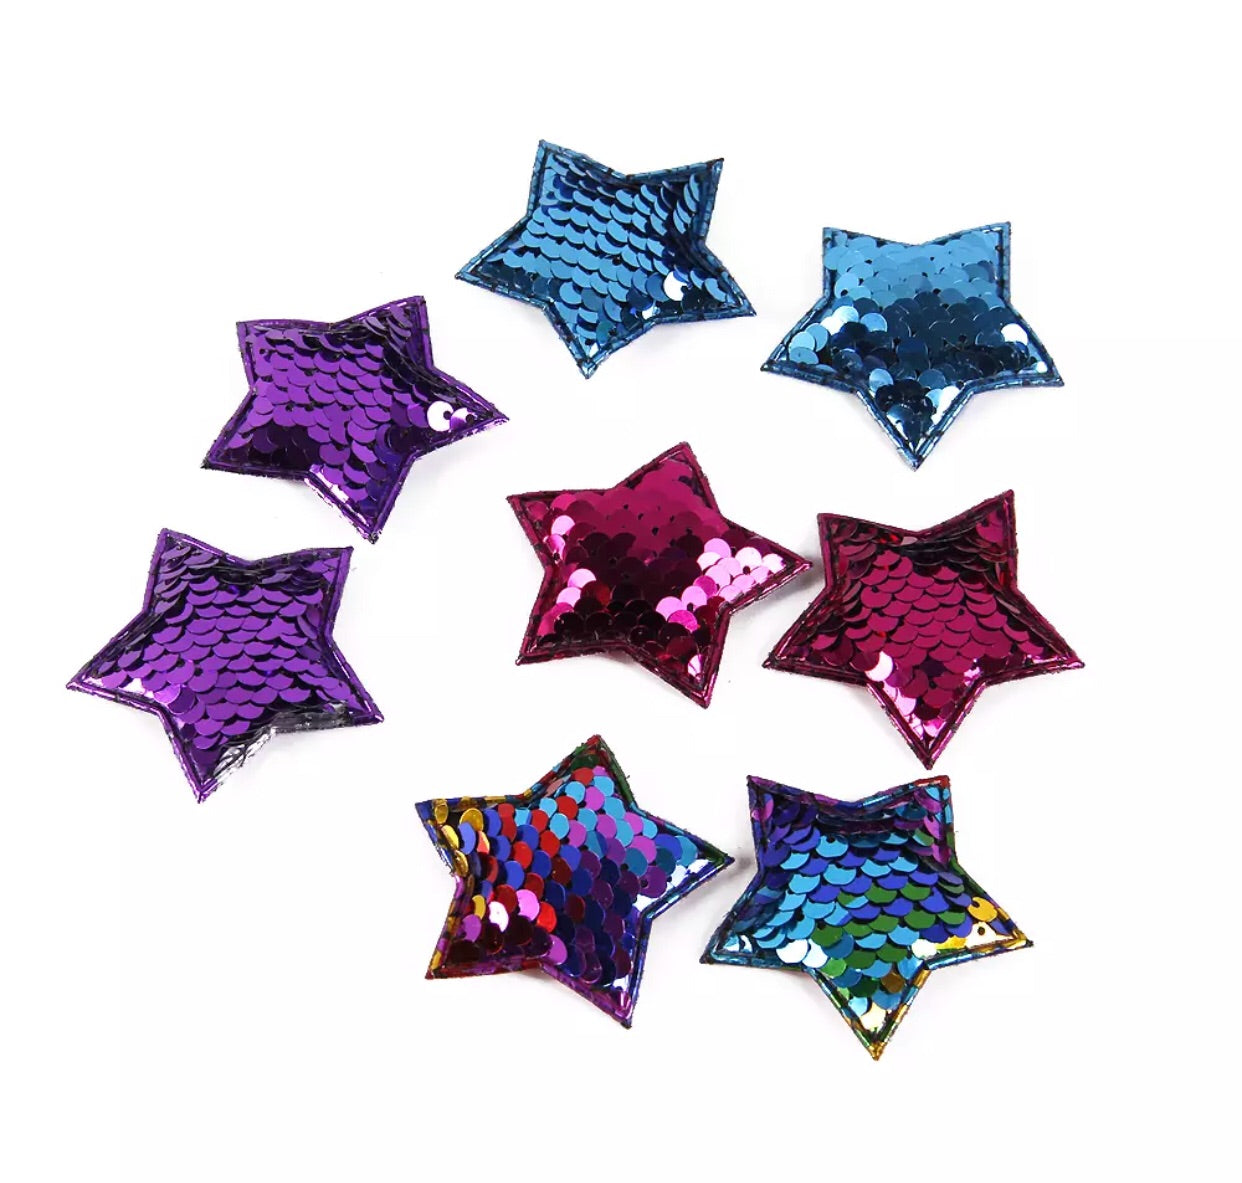 Reversible Sequin Padded Stars - shabbyflowers.com